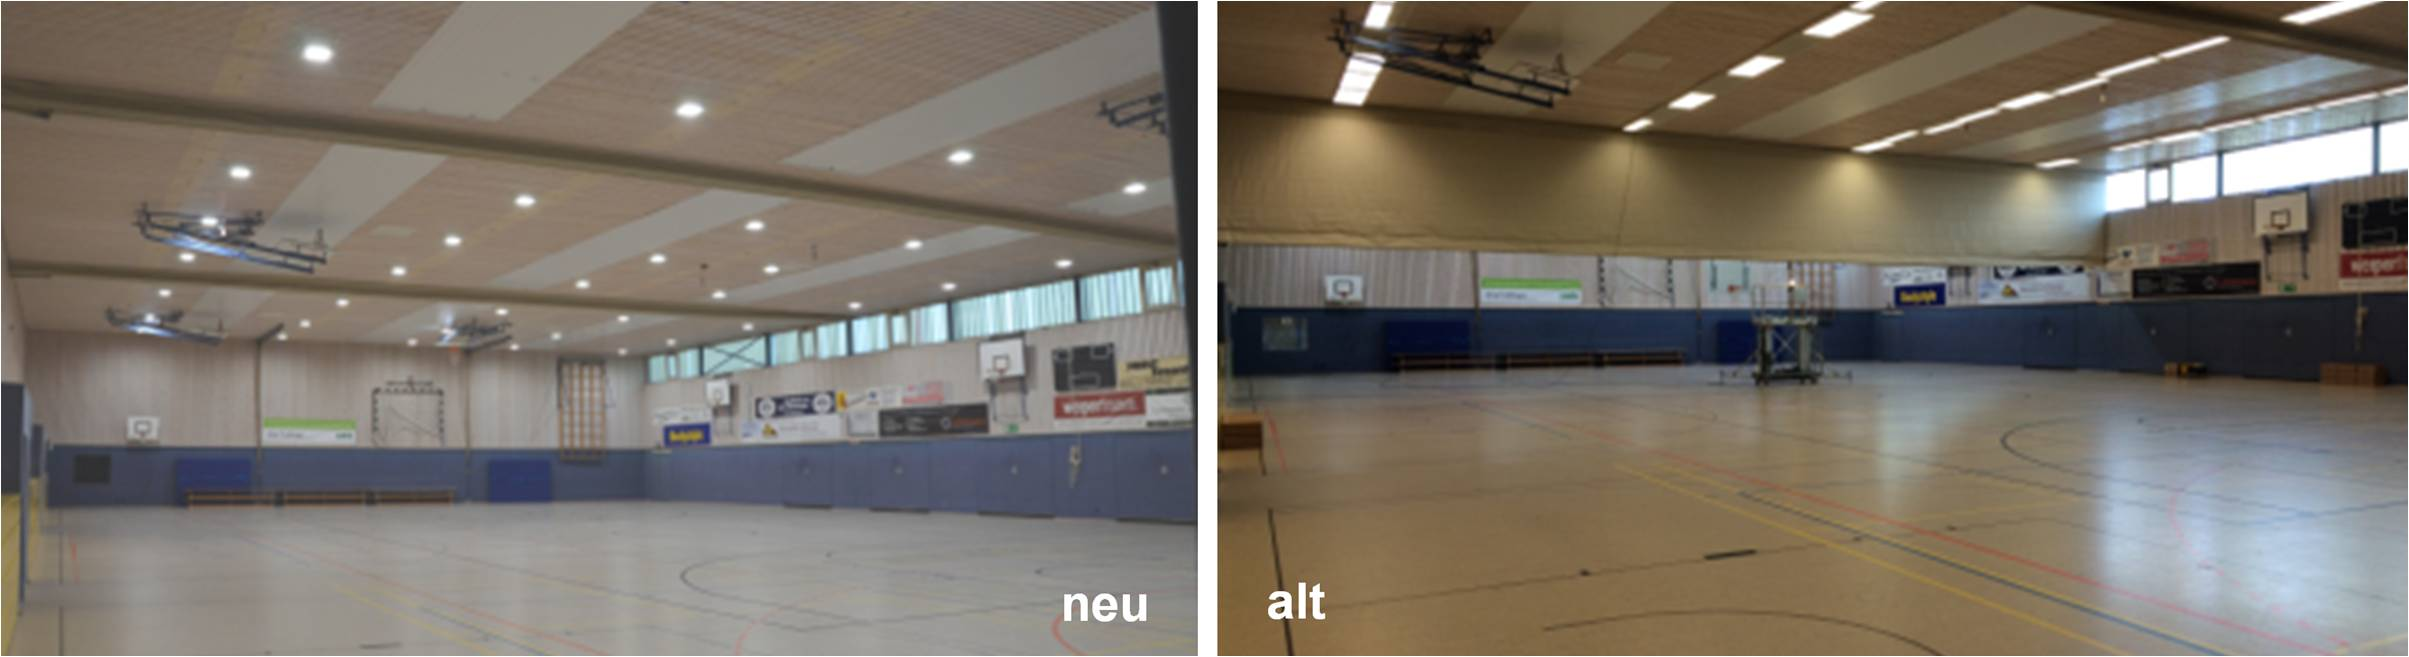 LED Distribution | Projects | Gym (Baumberg-Sporthalle) | Havixbeck, Germany